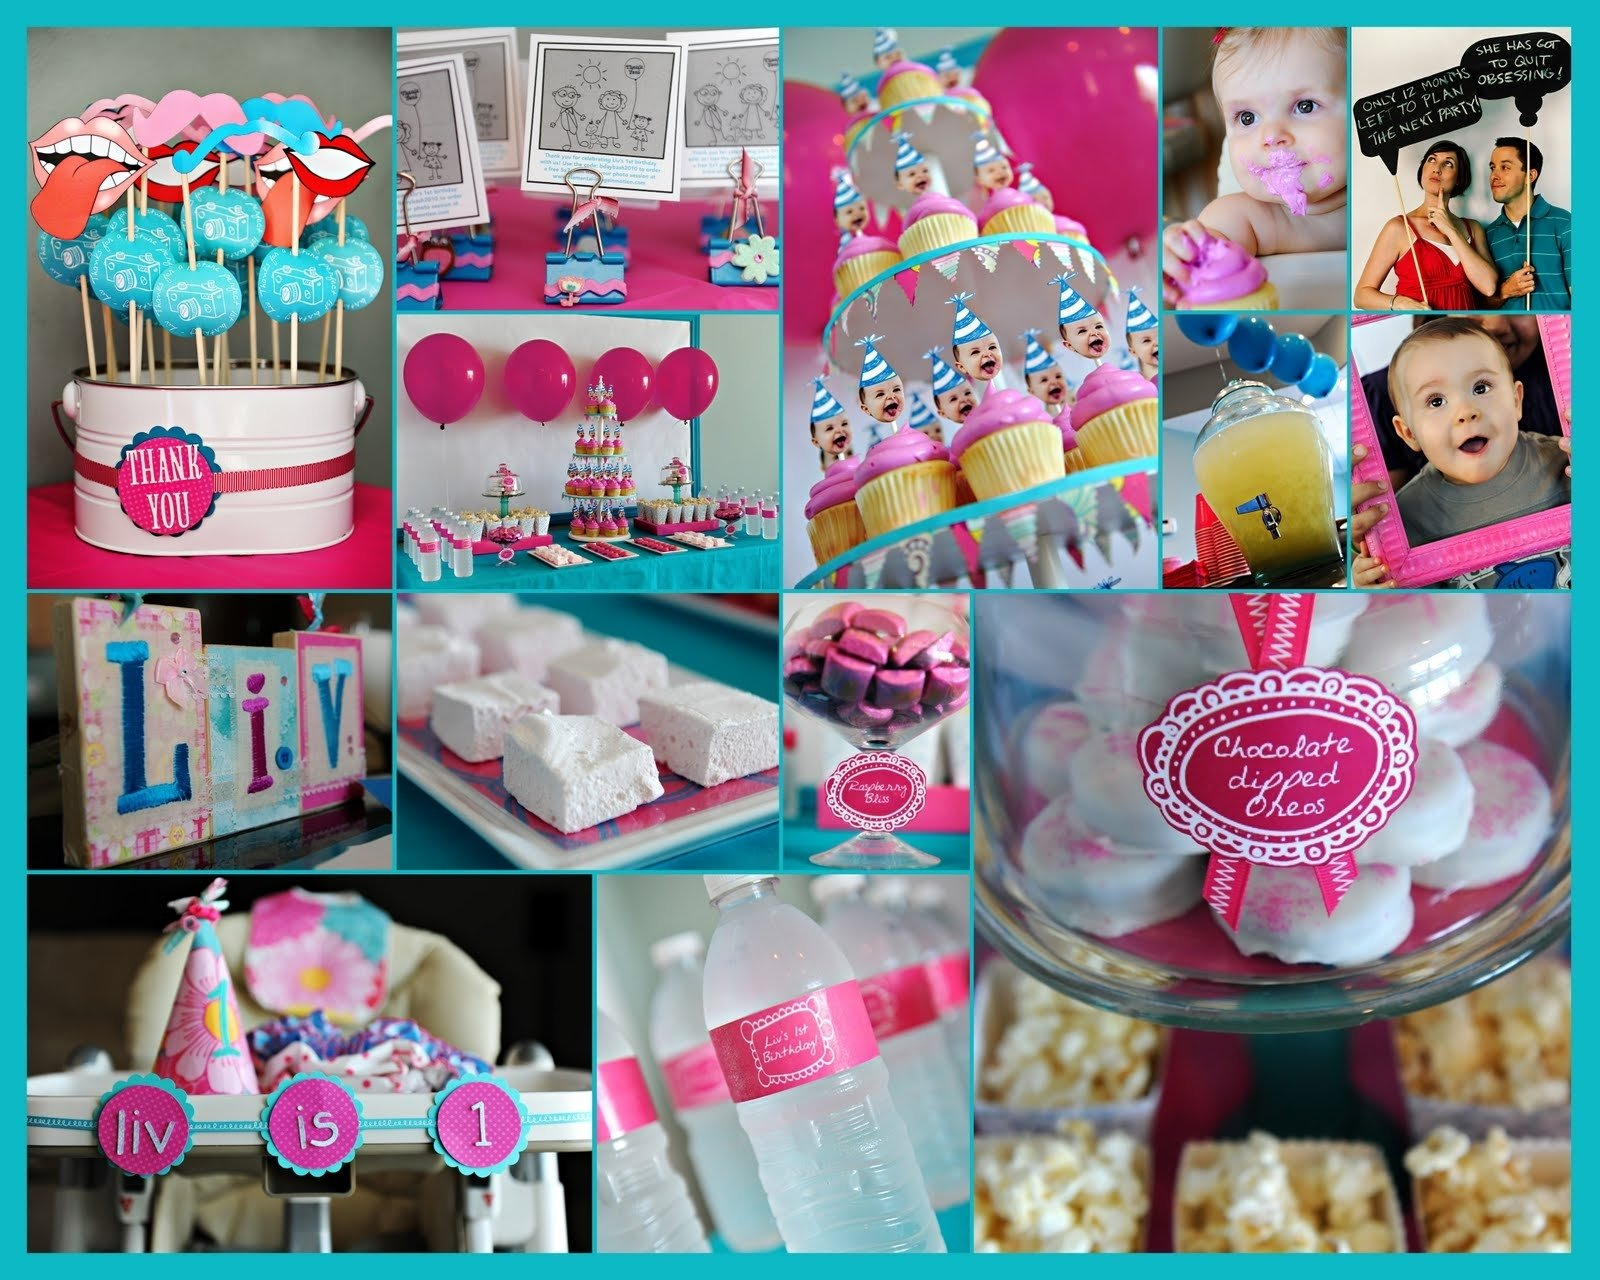 10 Unique Birthday Ideas For 2 Year Old Girl elle belle creative one year old in a flash a first birthday party 6 2020